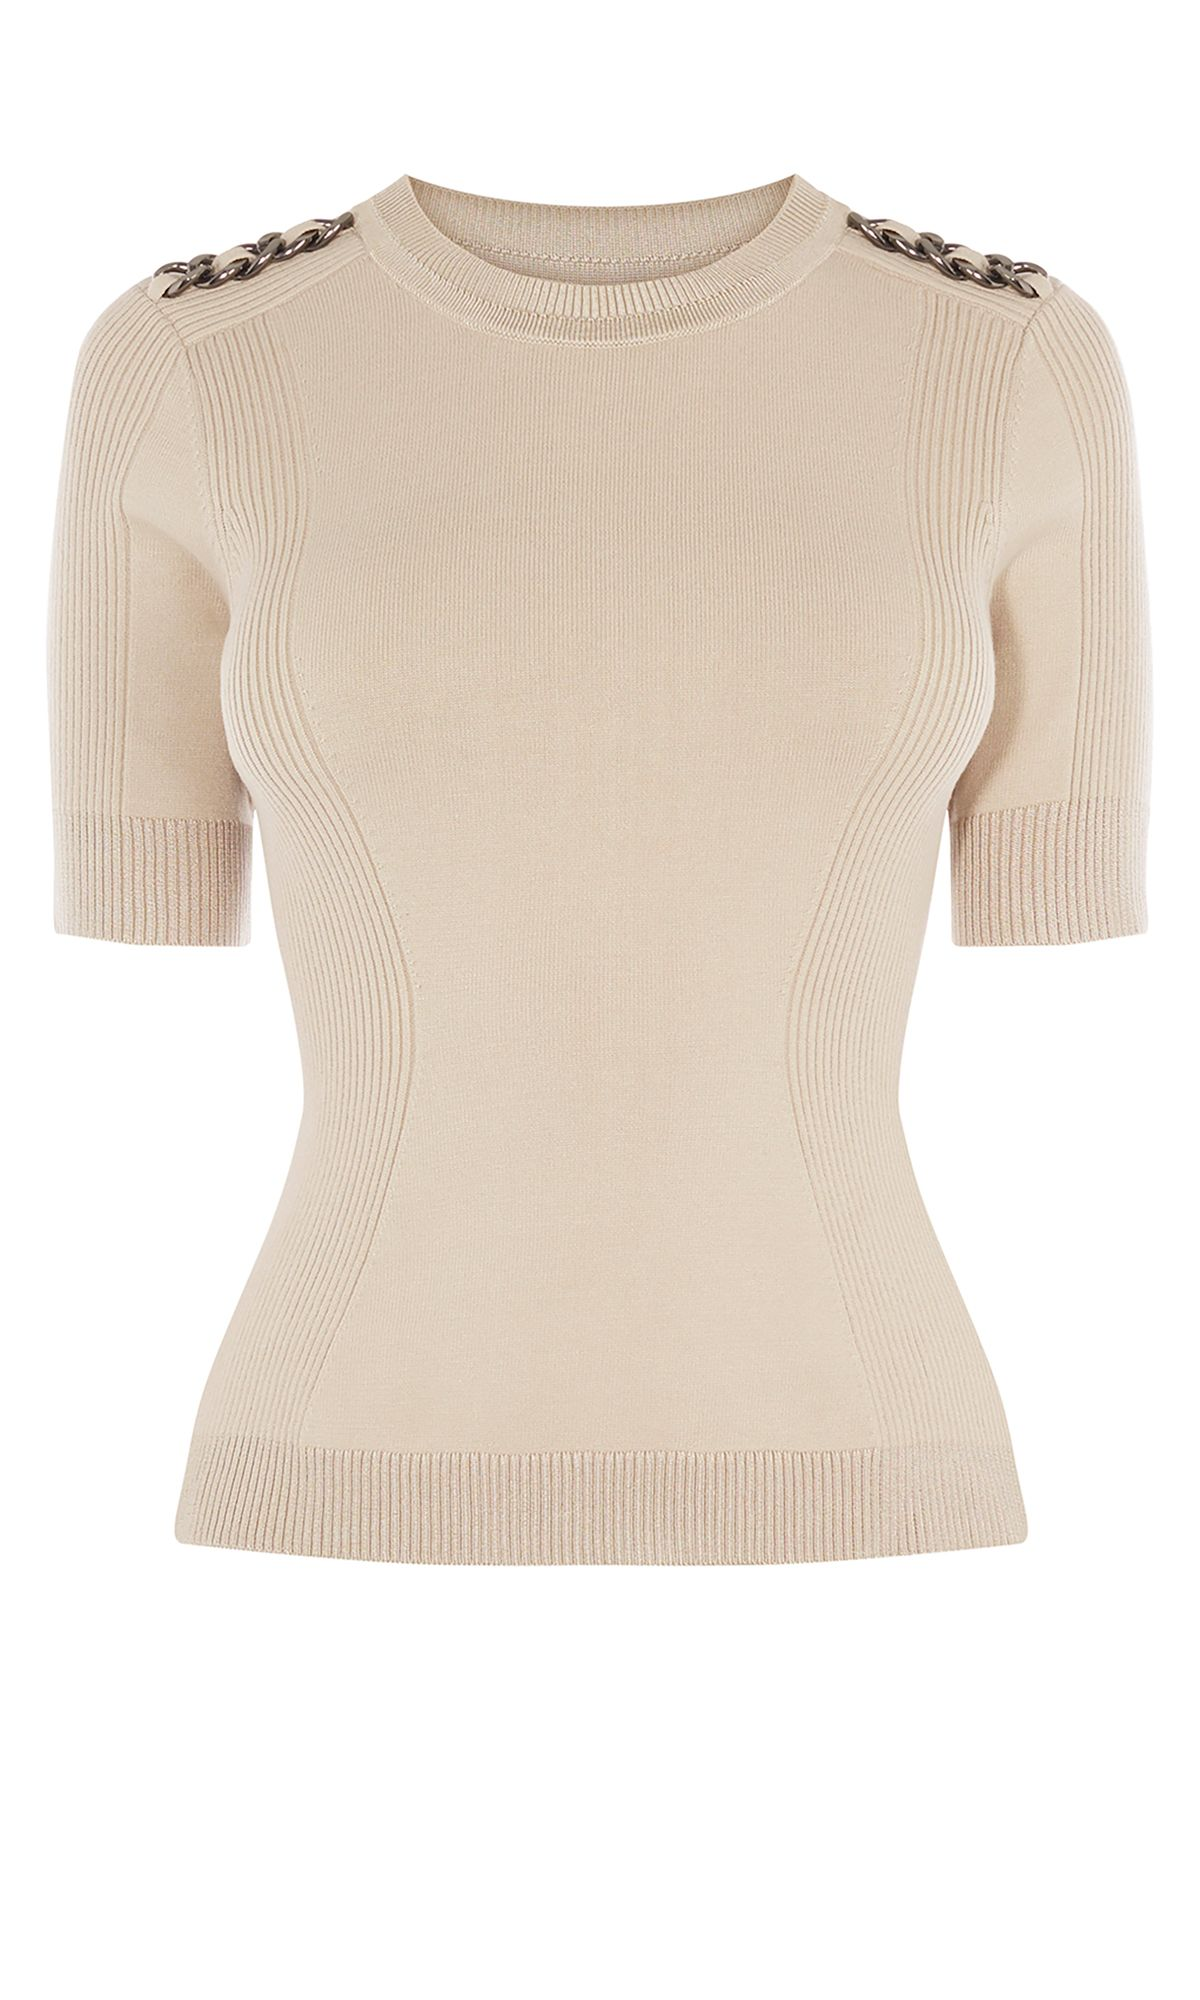 Karen Millen Chain Knitted Top, Stone